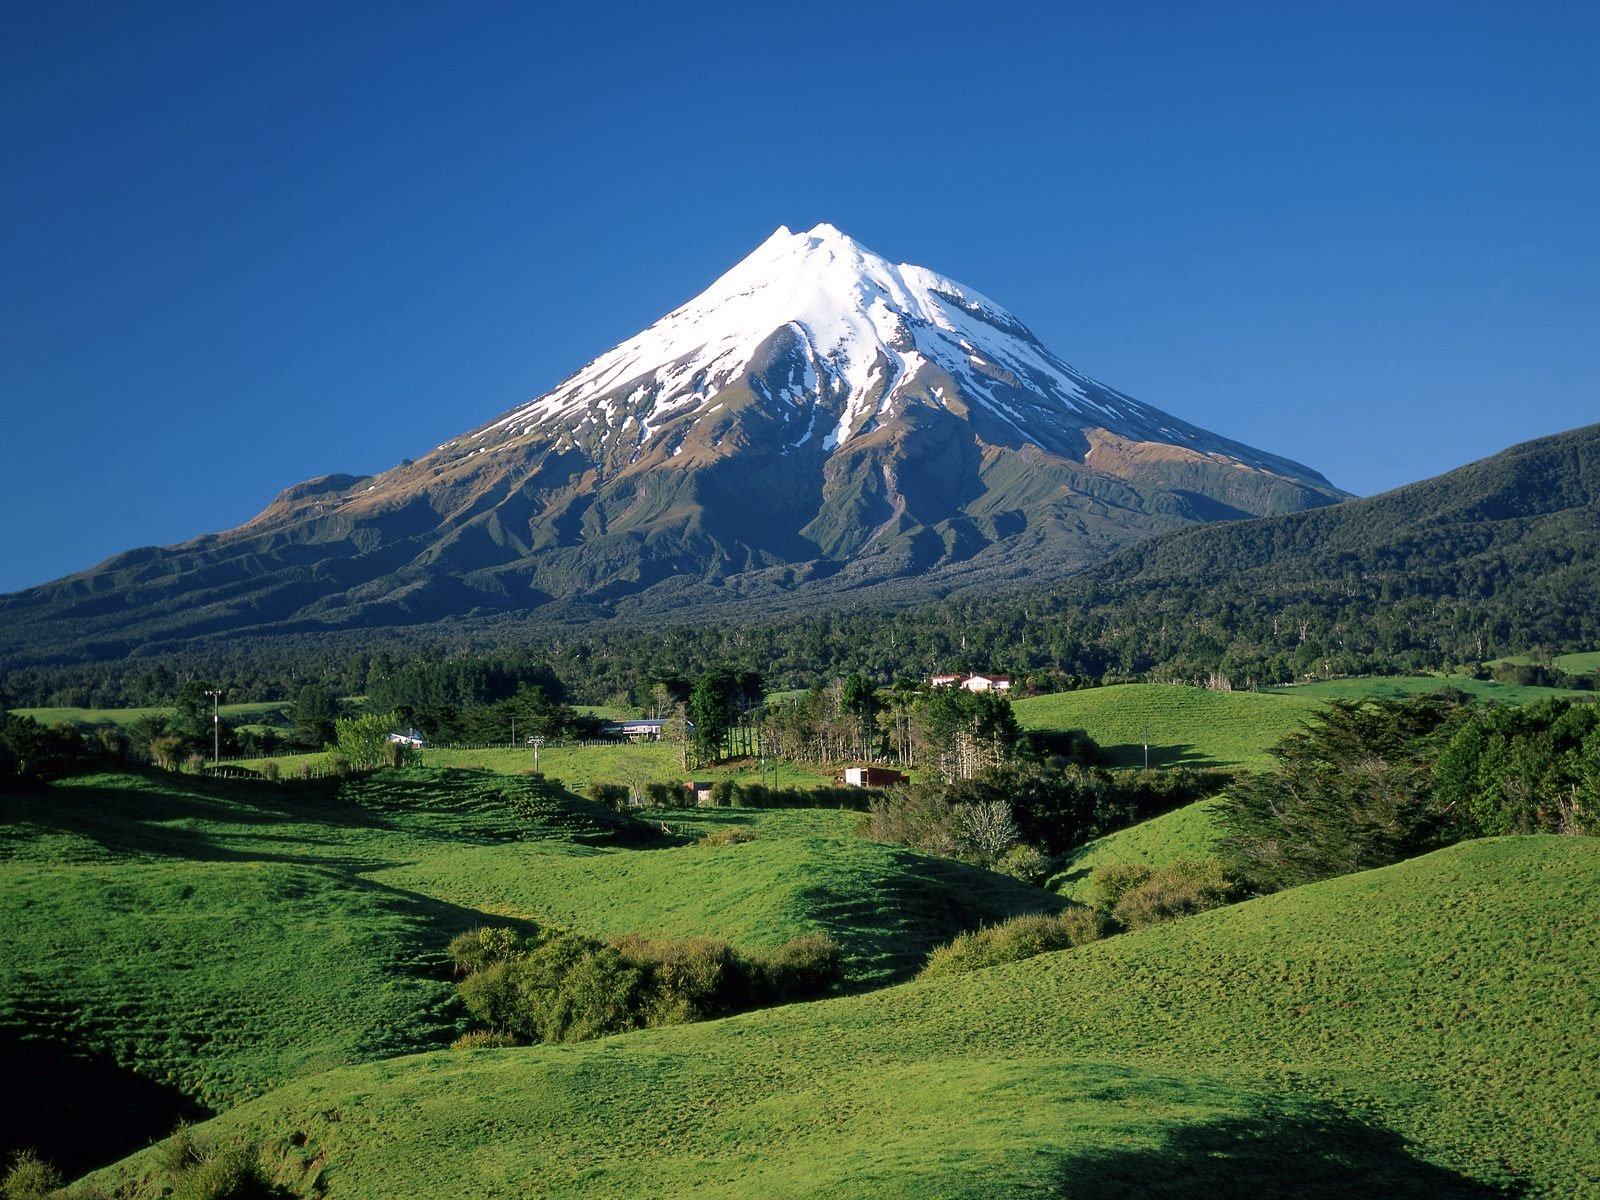 Download New Zealand Scenery Wallpapers PowerPoint E learning 1600x1200